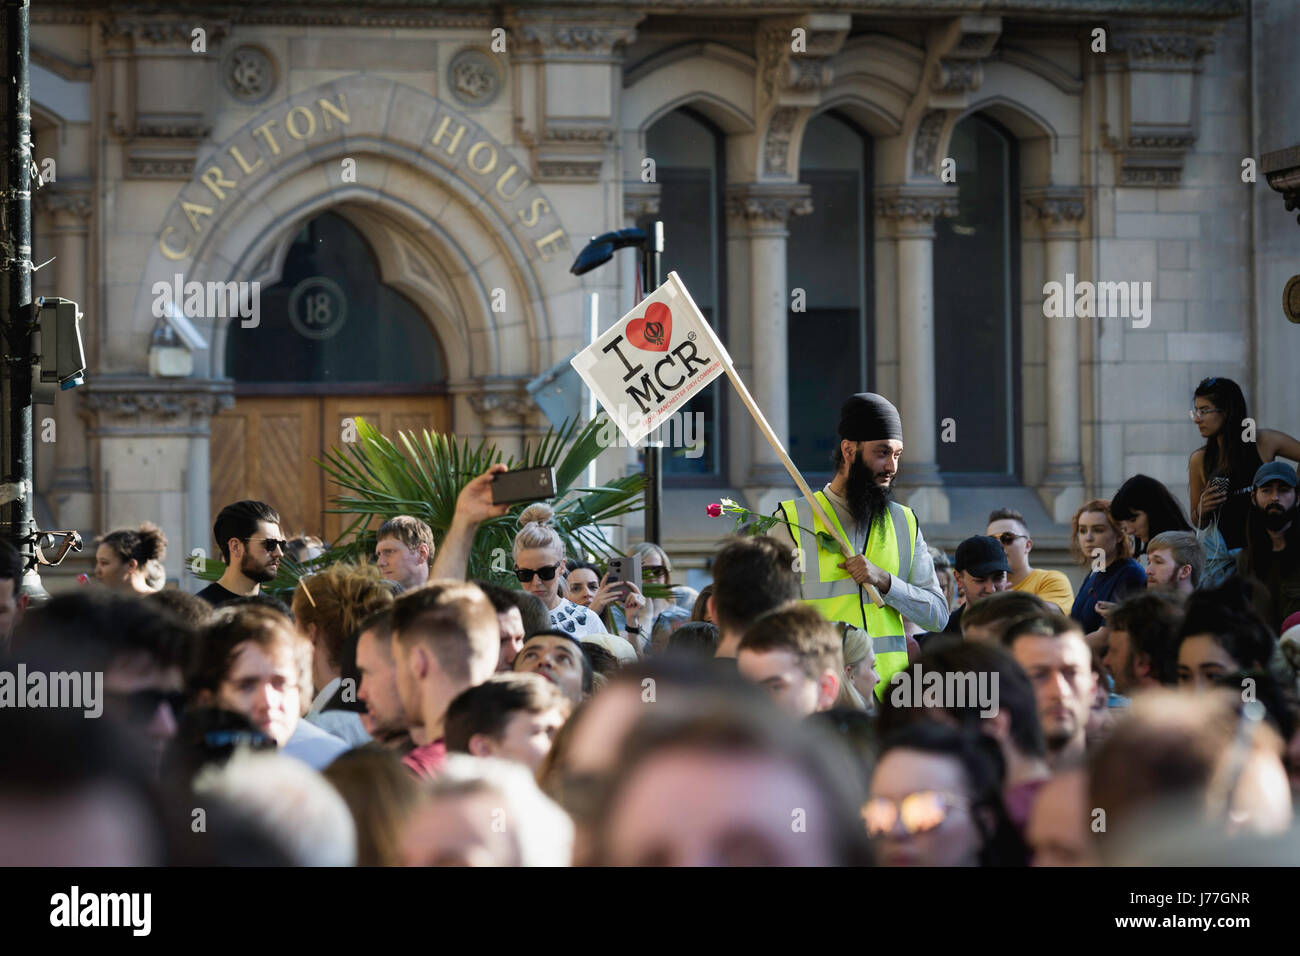 Manchester, UK. 23rd May, 2017. Thousands gather for a vigil at Manchester town hall to stand together in solidarity - Stock Image